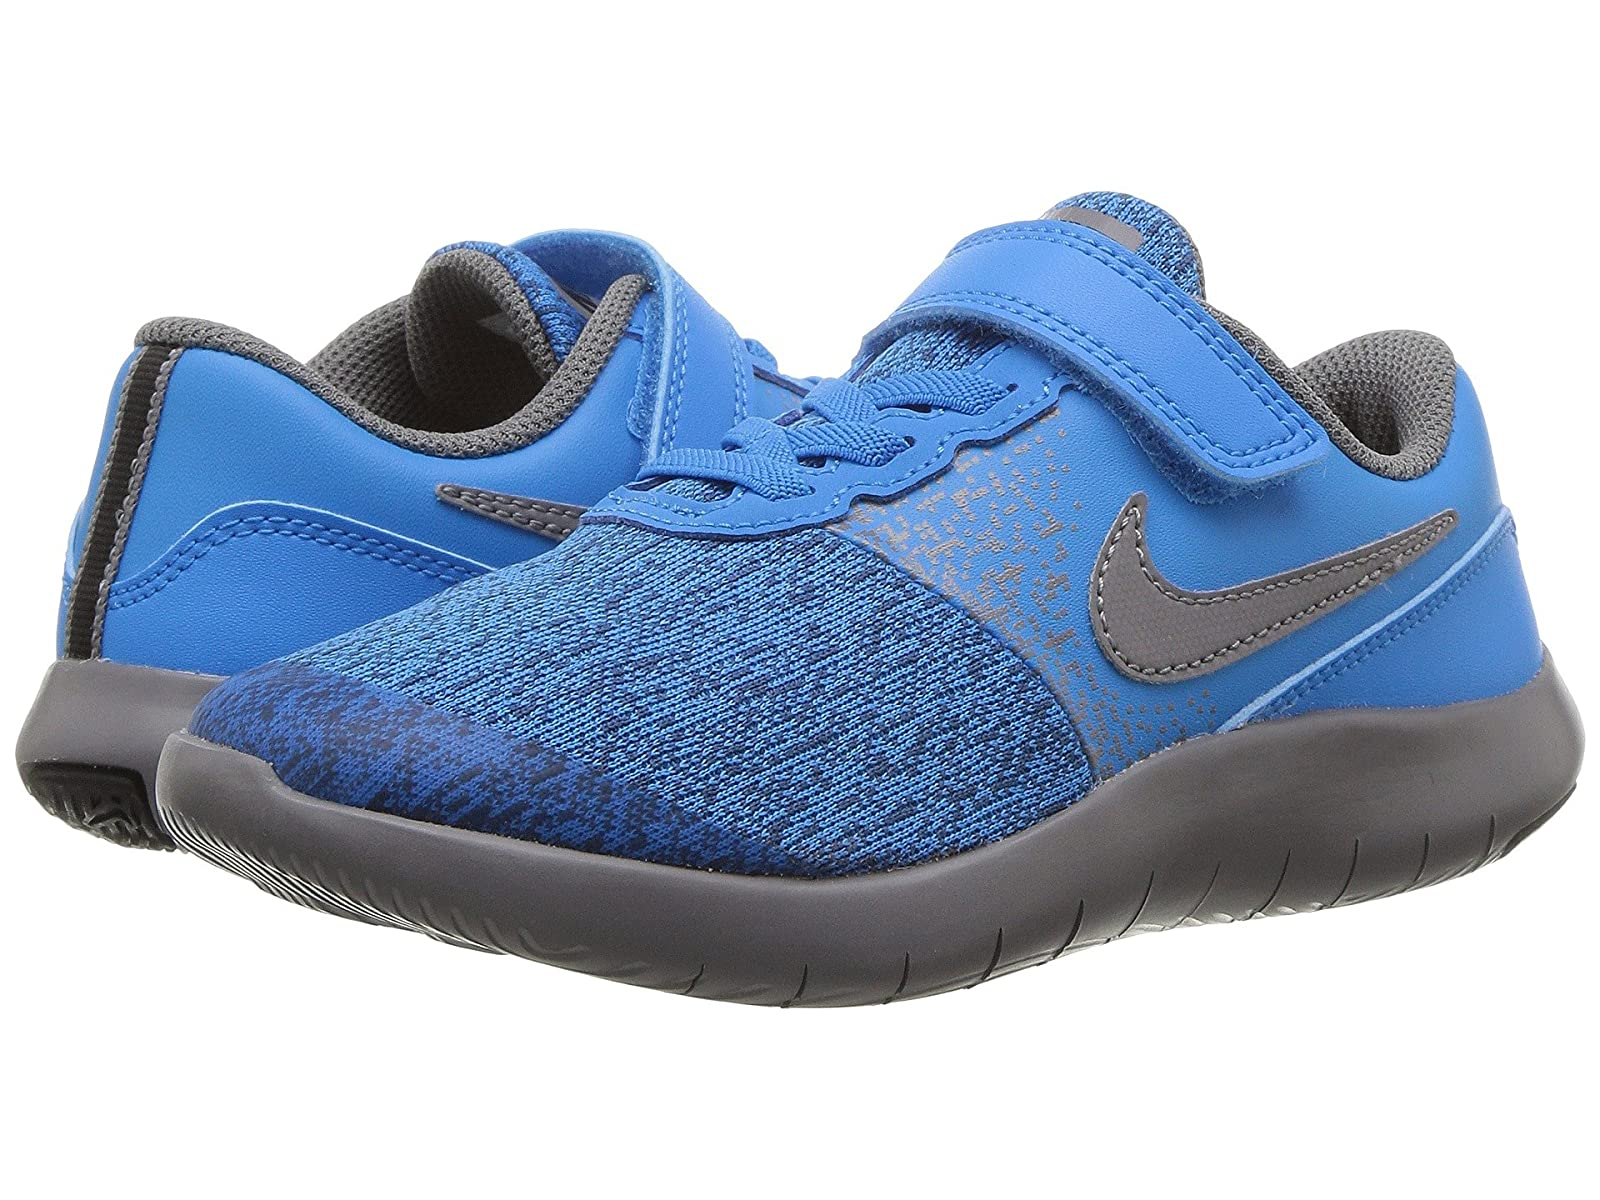 Nike Kids Flex Contact (Little Kid)Atmospheric grades have affordable shoes